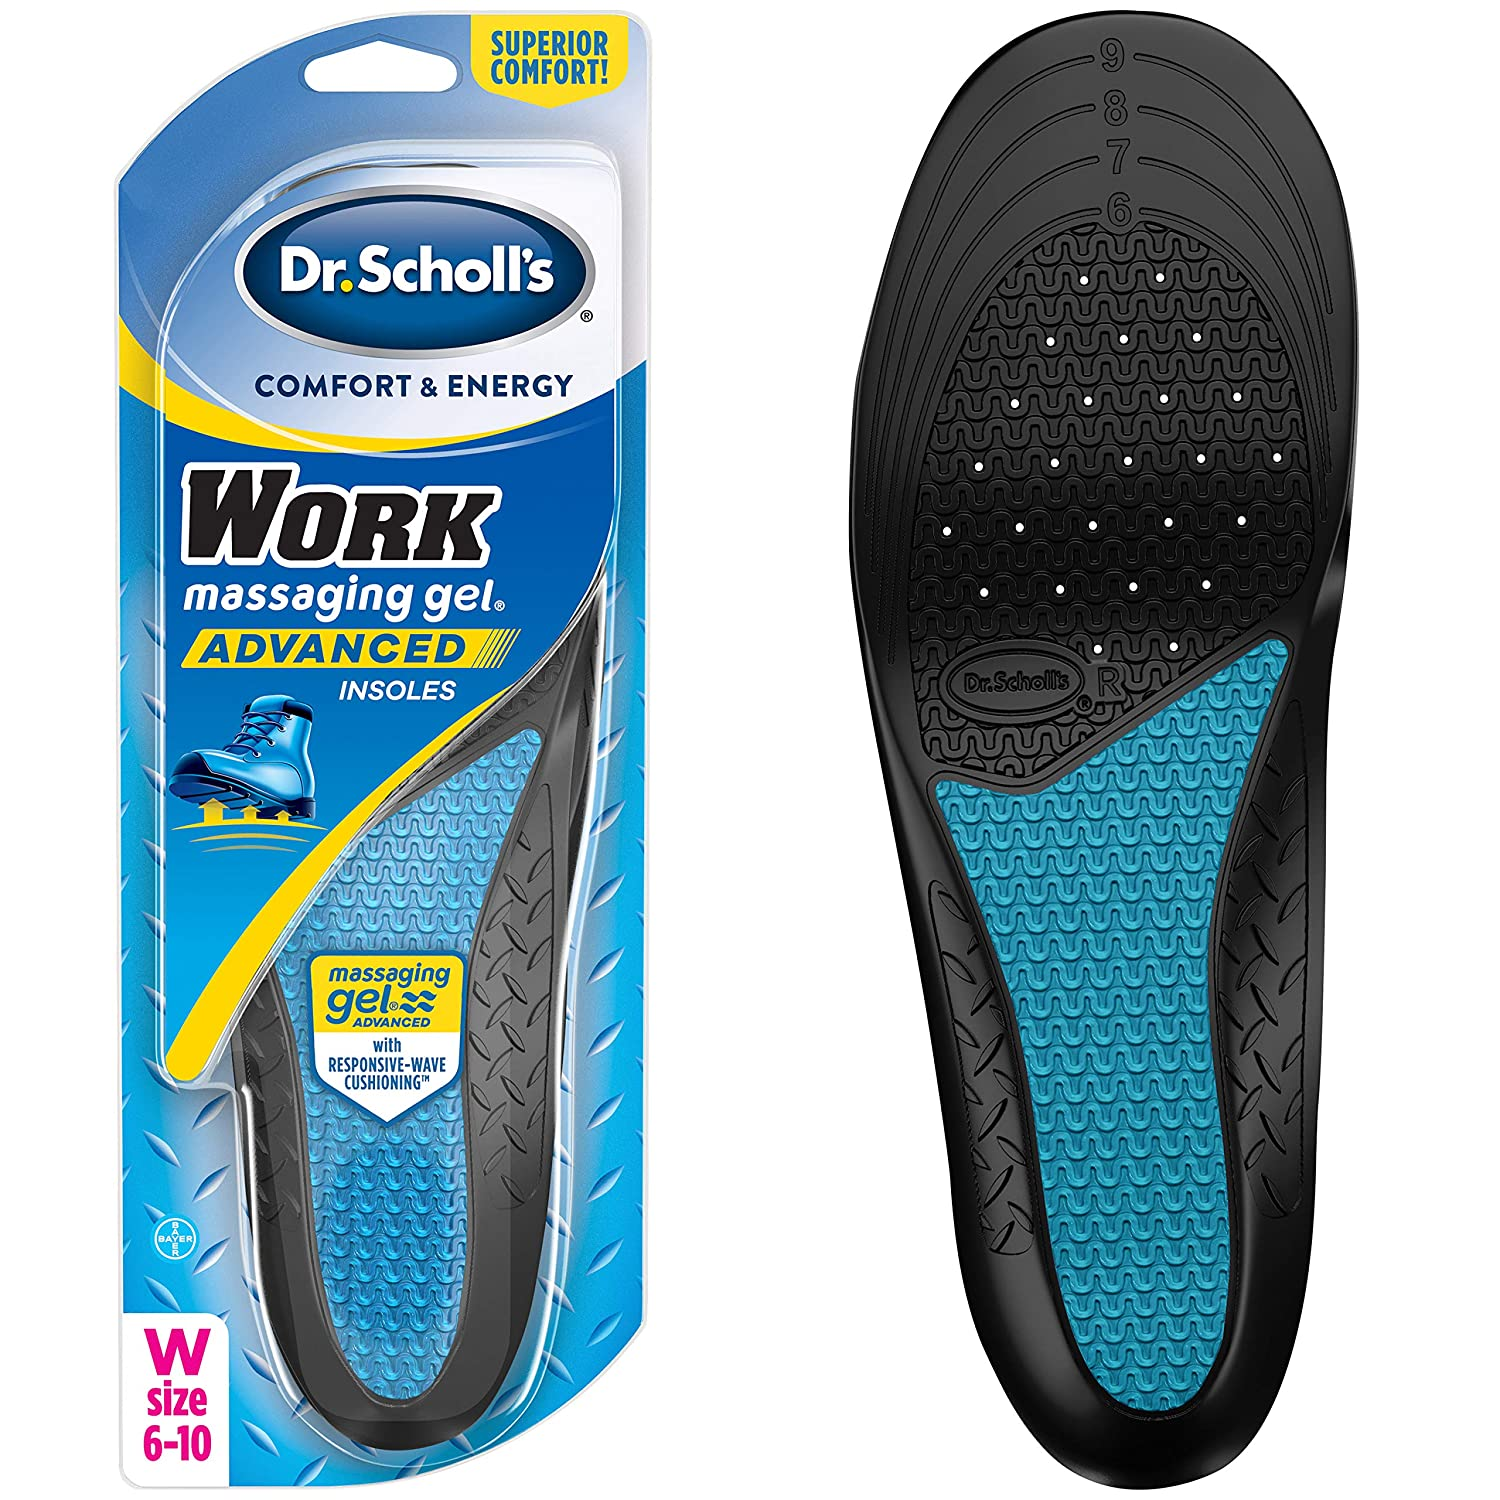 Dr. Scholl's WORK Insoles // All-Day Shock Absorption and Reinforced Arch Support that Fits in Work Boots and More (for Women's 6-10)